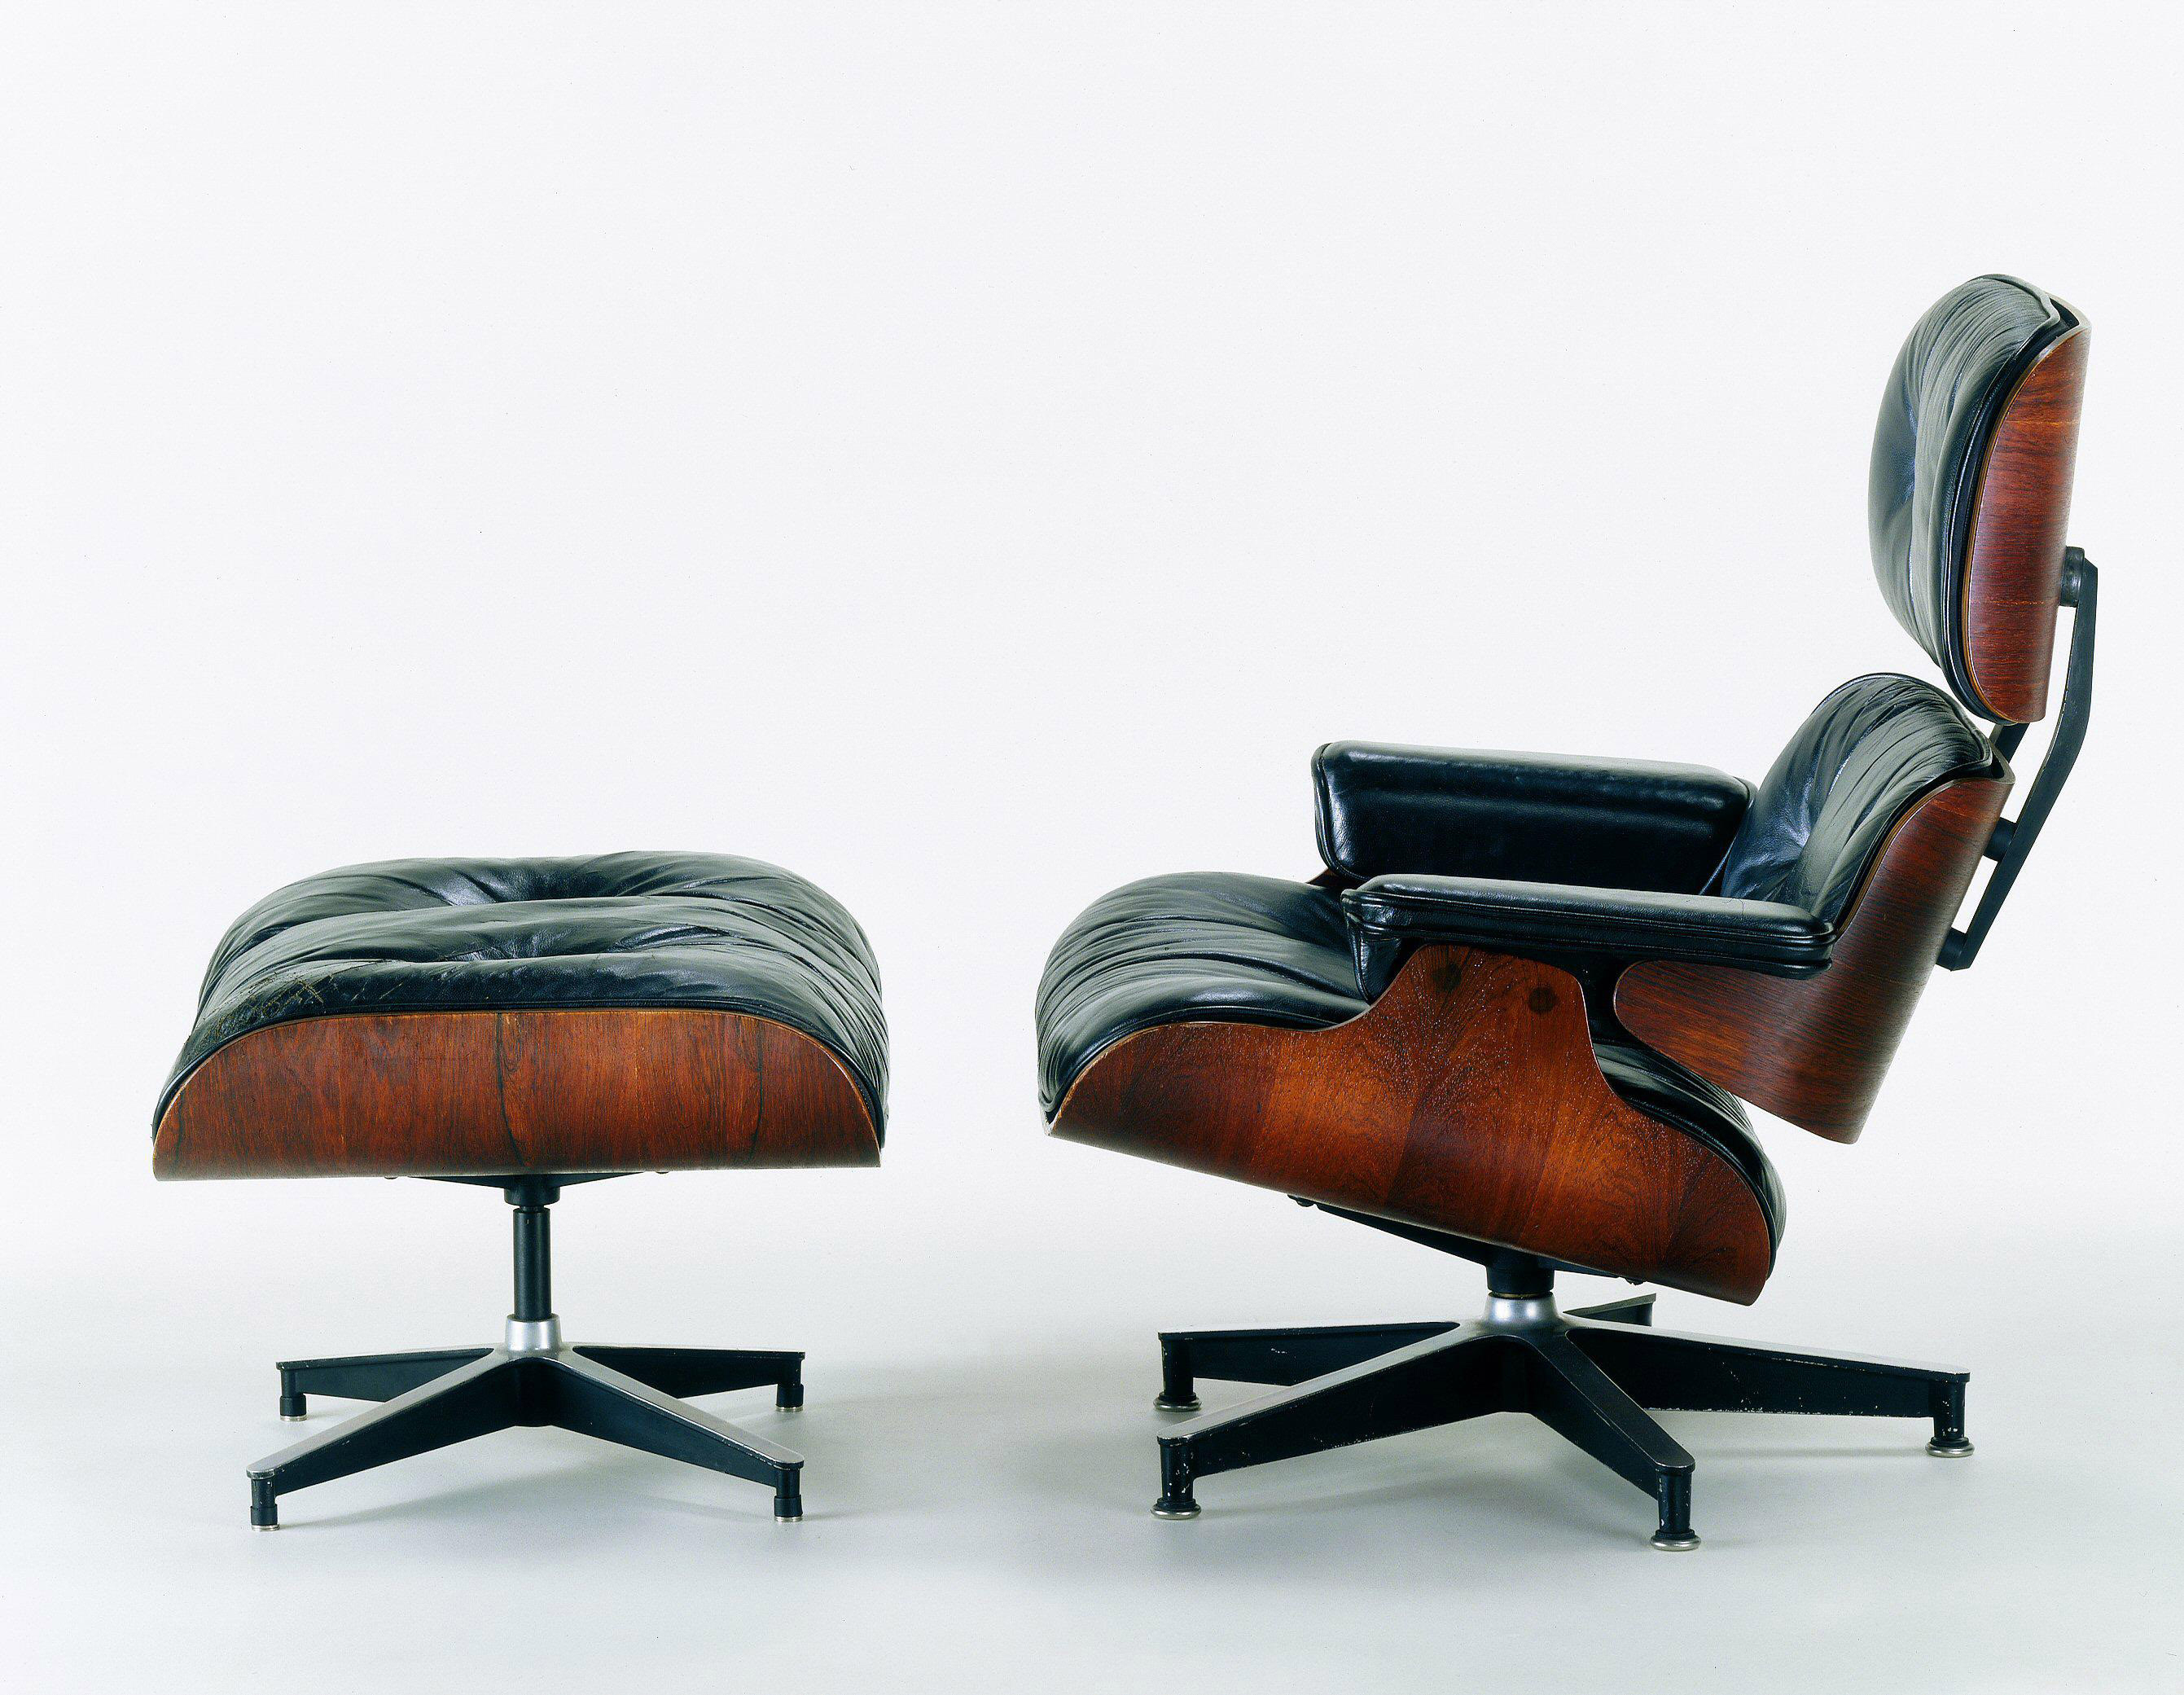 eames lounge chair manufacturing in the vitra atelier the superslice. Black Bedroom Furniture Sets. Home Design Ideas